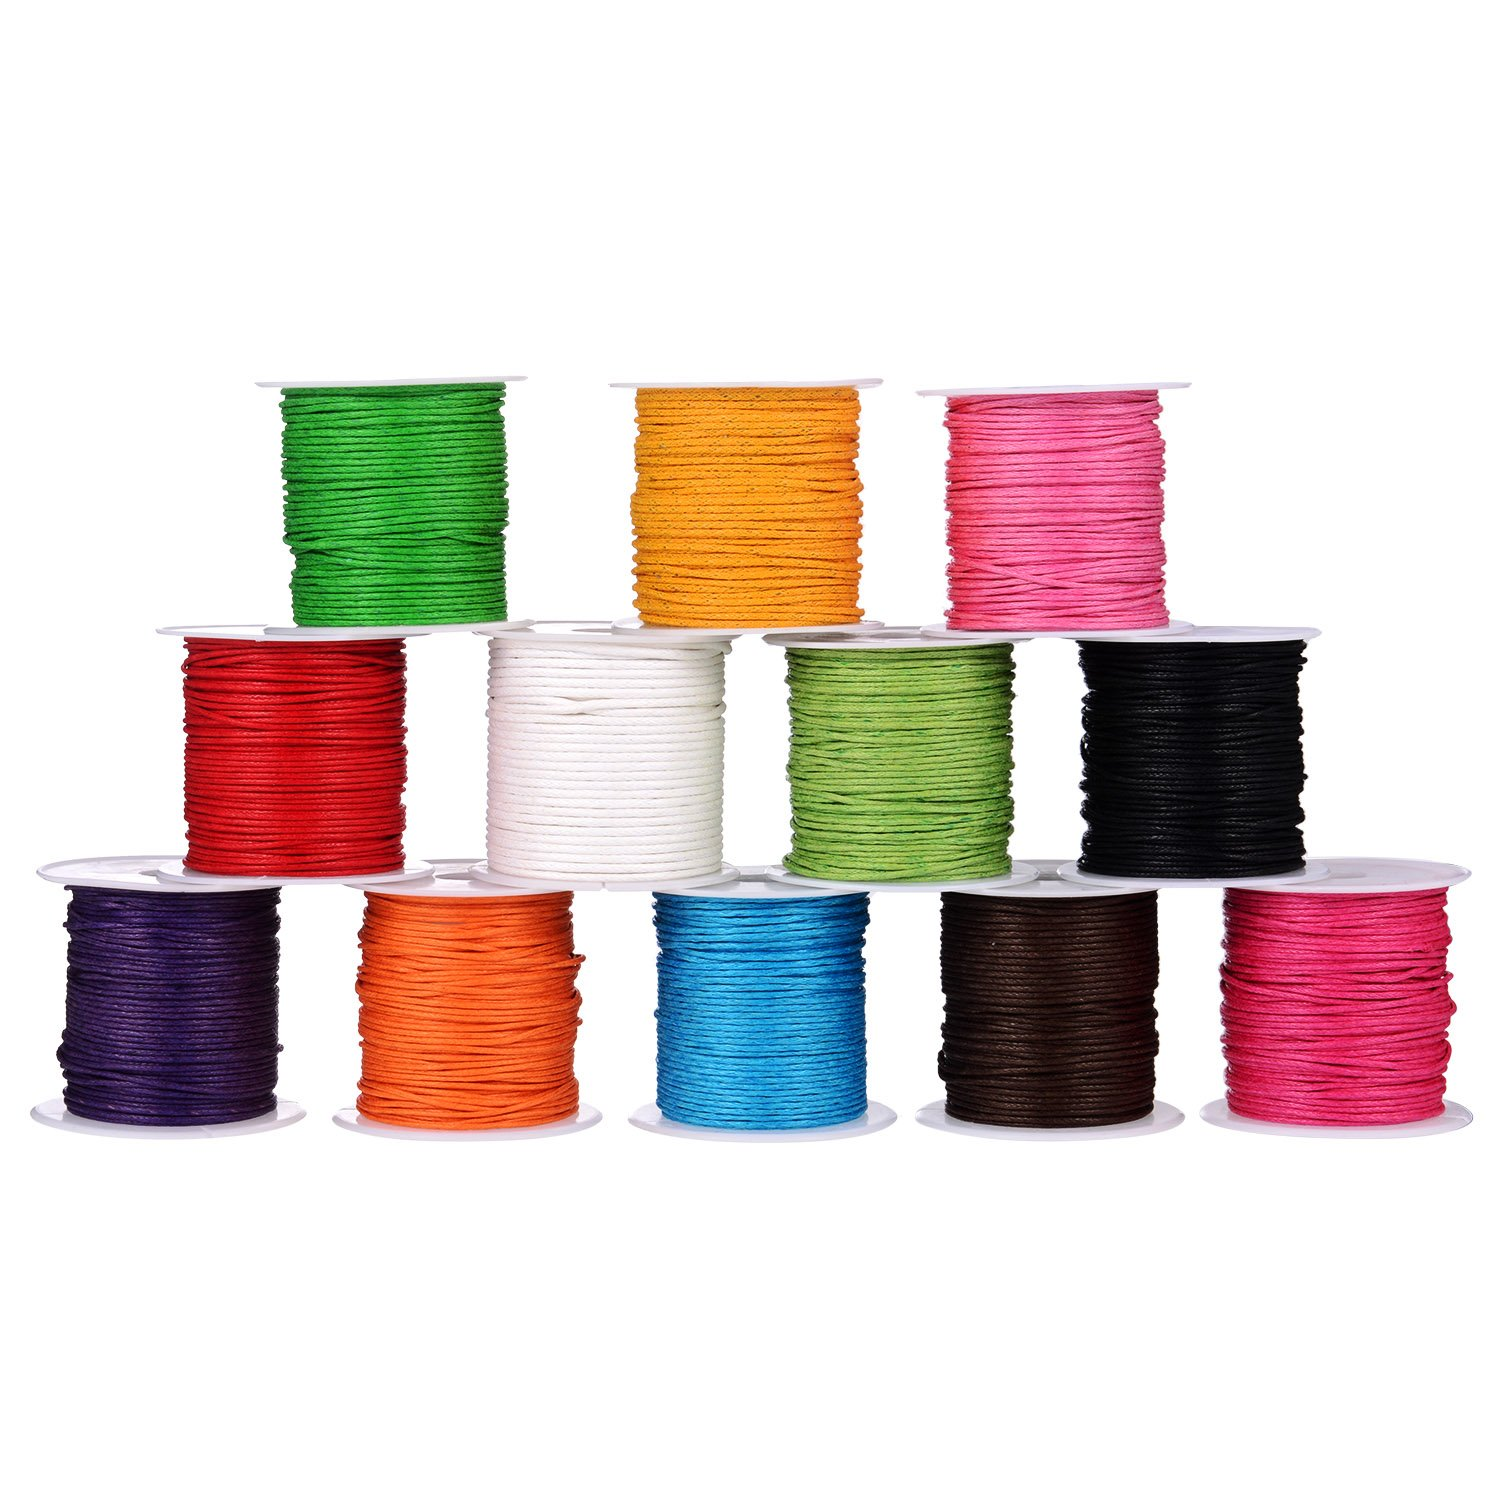 12 Rolls 1 mm Waxed Cord, Imitation Leather Waxed Thread Braided Strings for Craft Making, DIY, Beading, 12 Colors, 10 Meters Each Shappy 4336807103